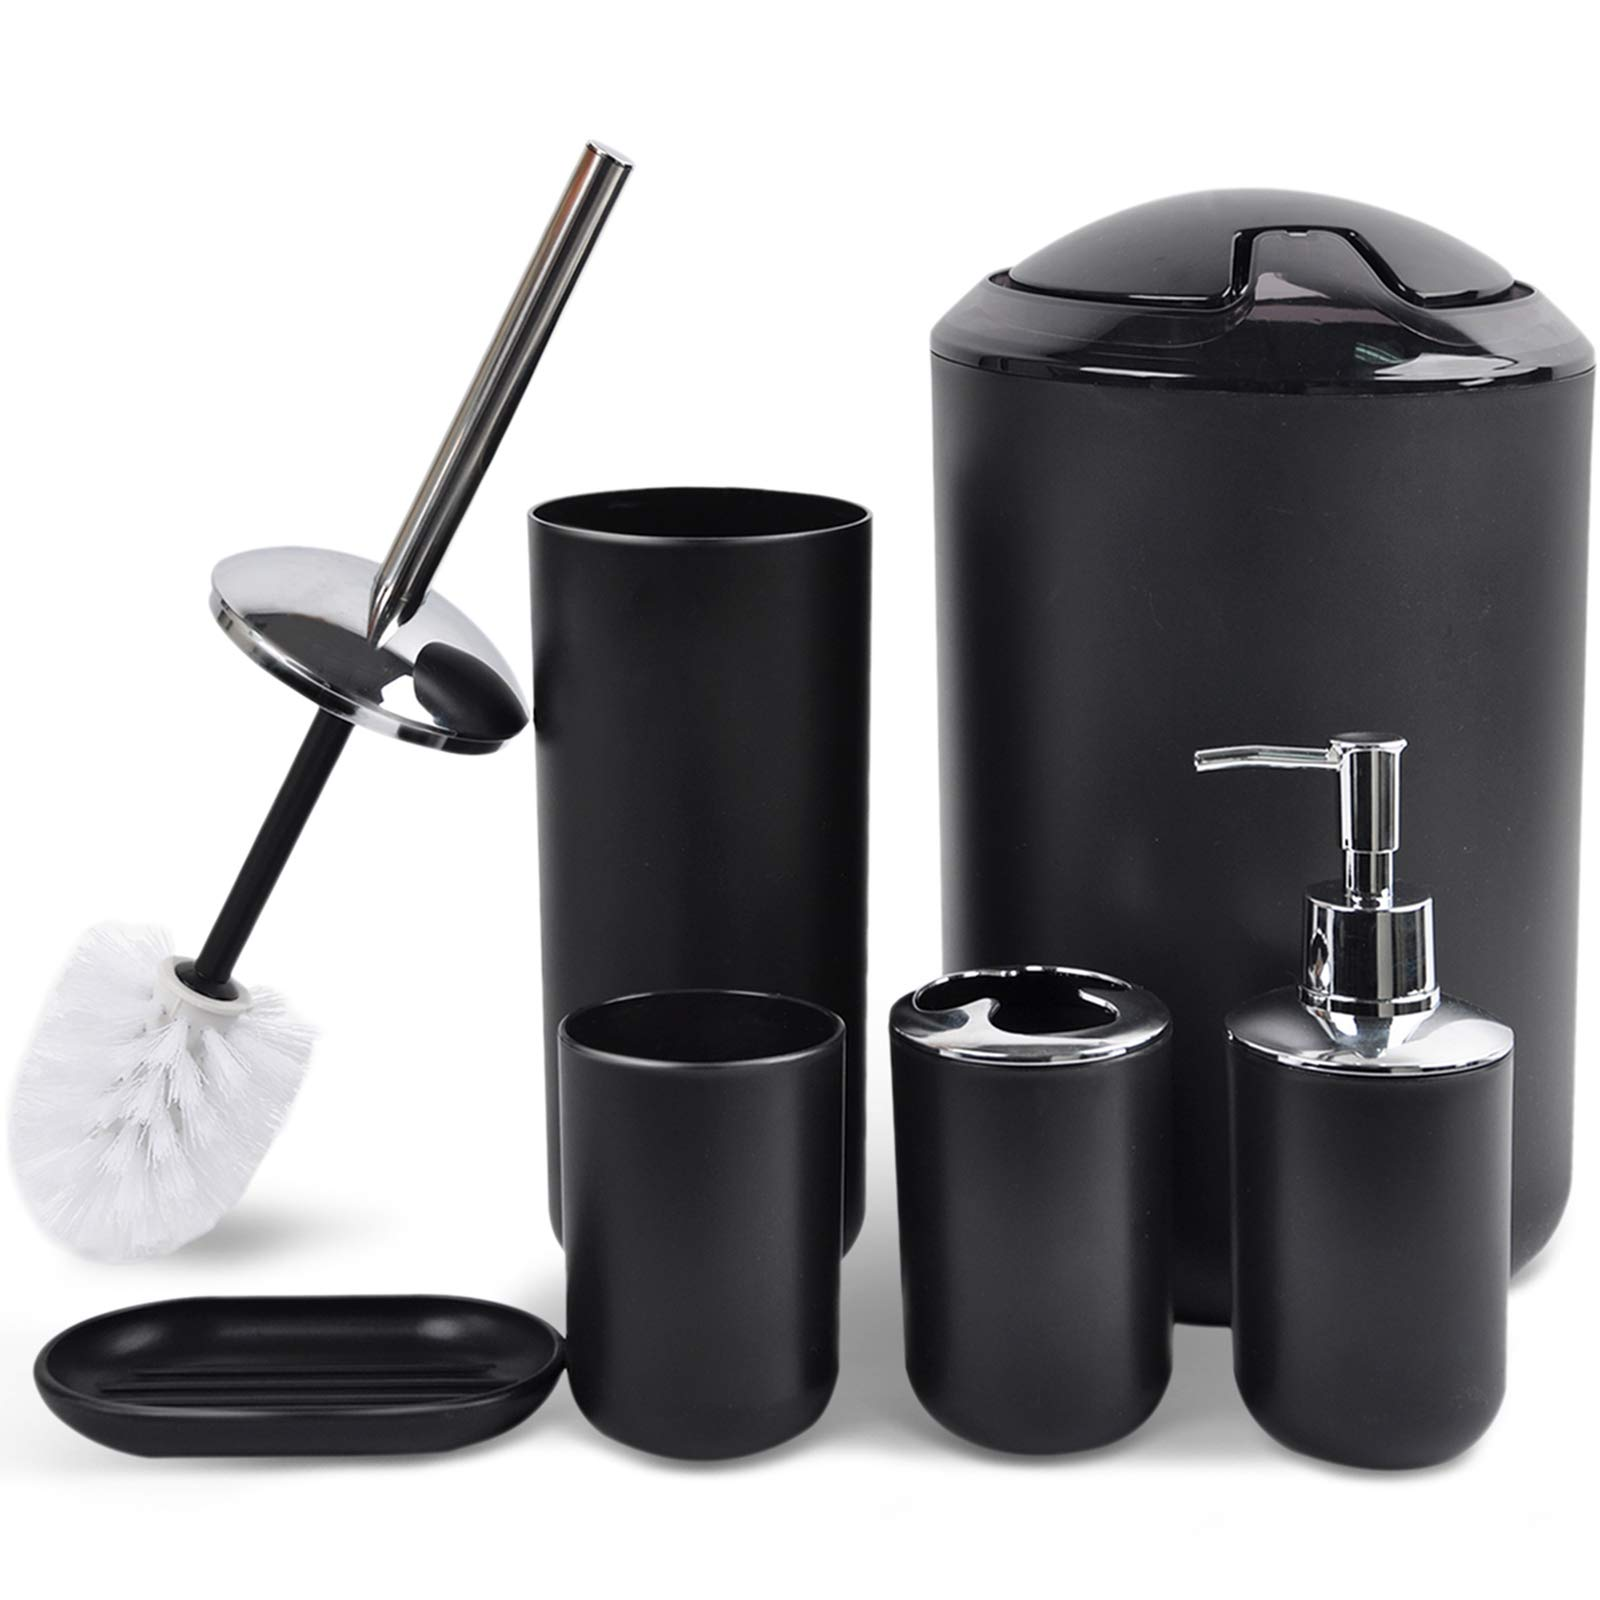 Amazon Com Cerbior Bathroom Accessories Set 6 Piece Bath Ensemble Includes Soap Dispenser Toothbrush Holder Toothbrush Cup Soap Dish For Decorative Countertop And Housewarming Gift Black Home Kitchen